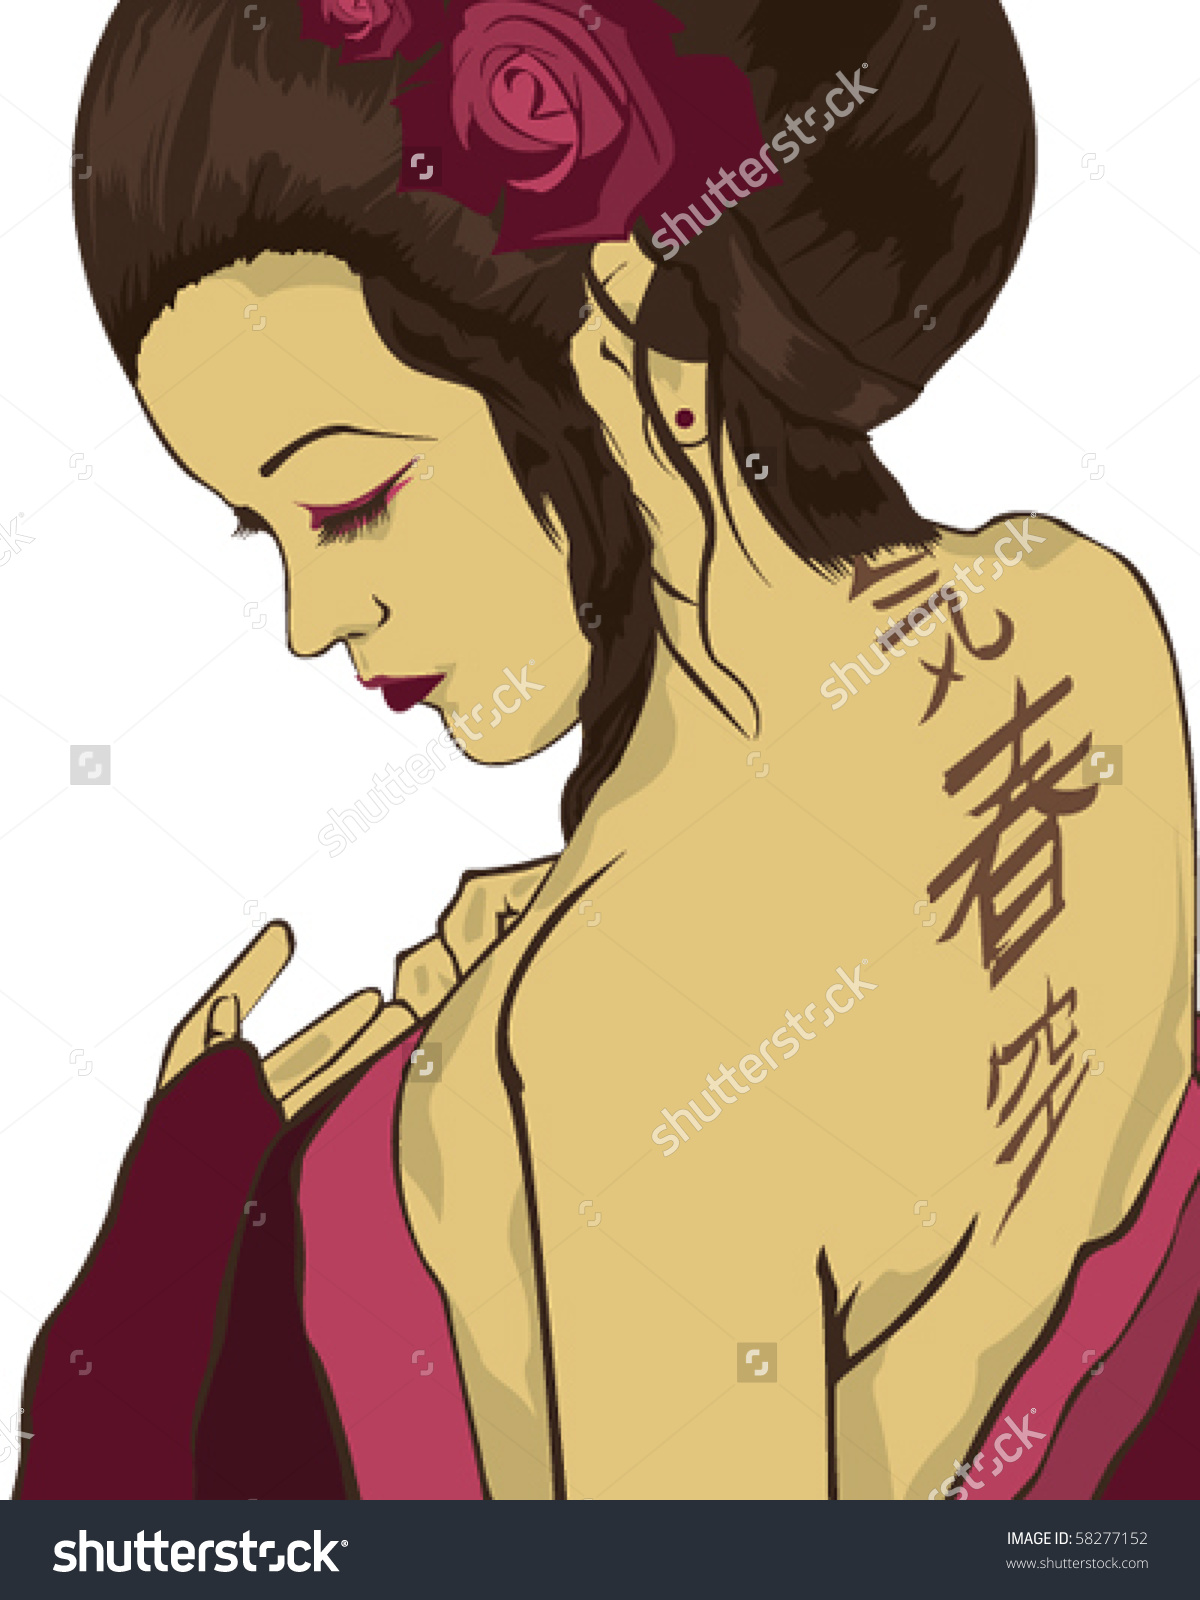 Courtesan clipart #12, Download drawings